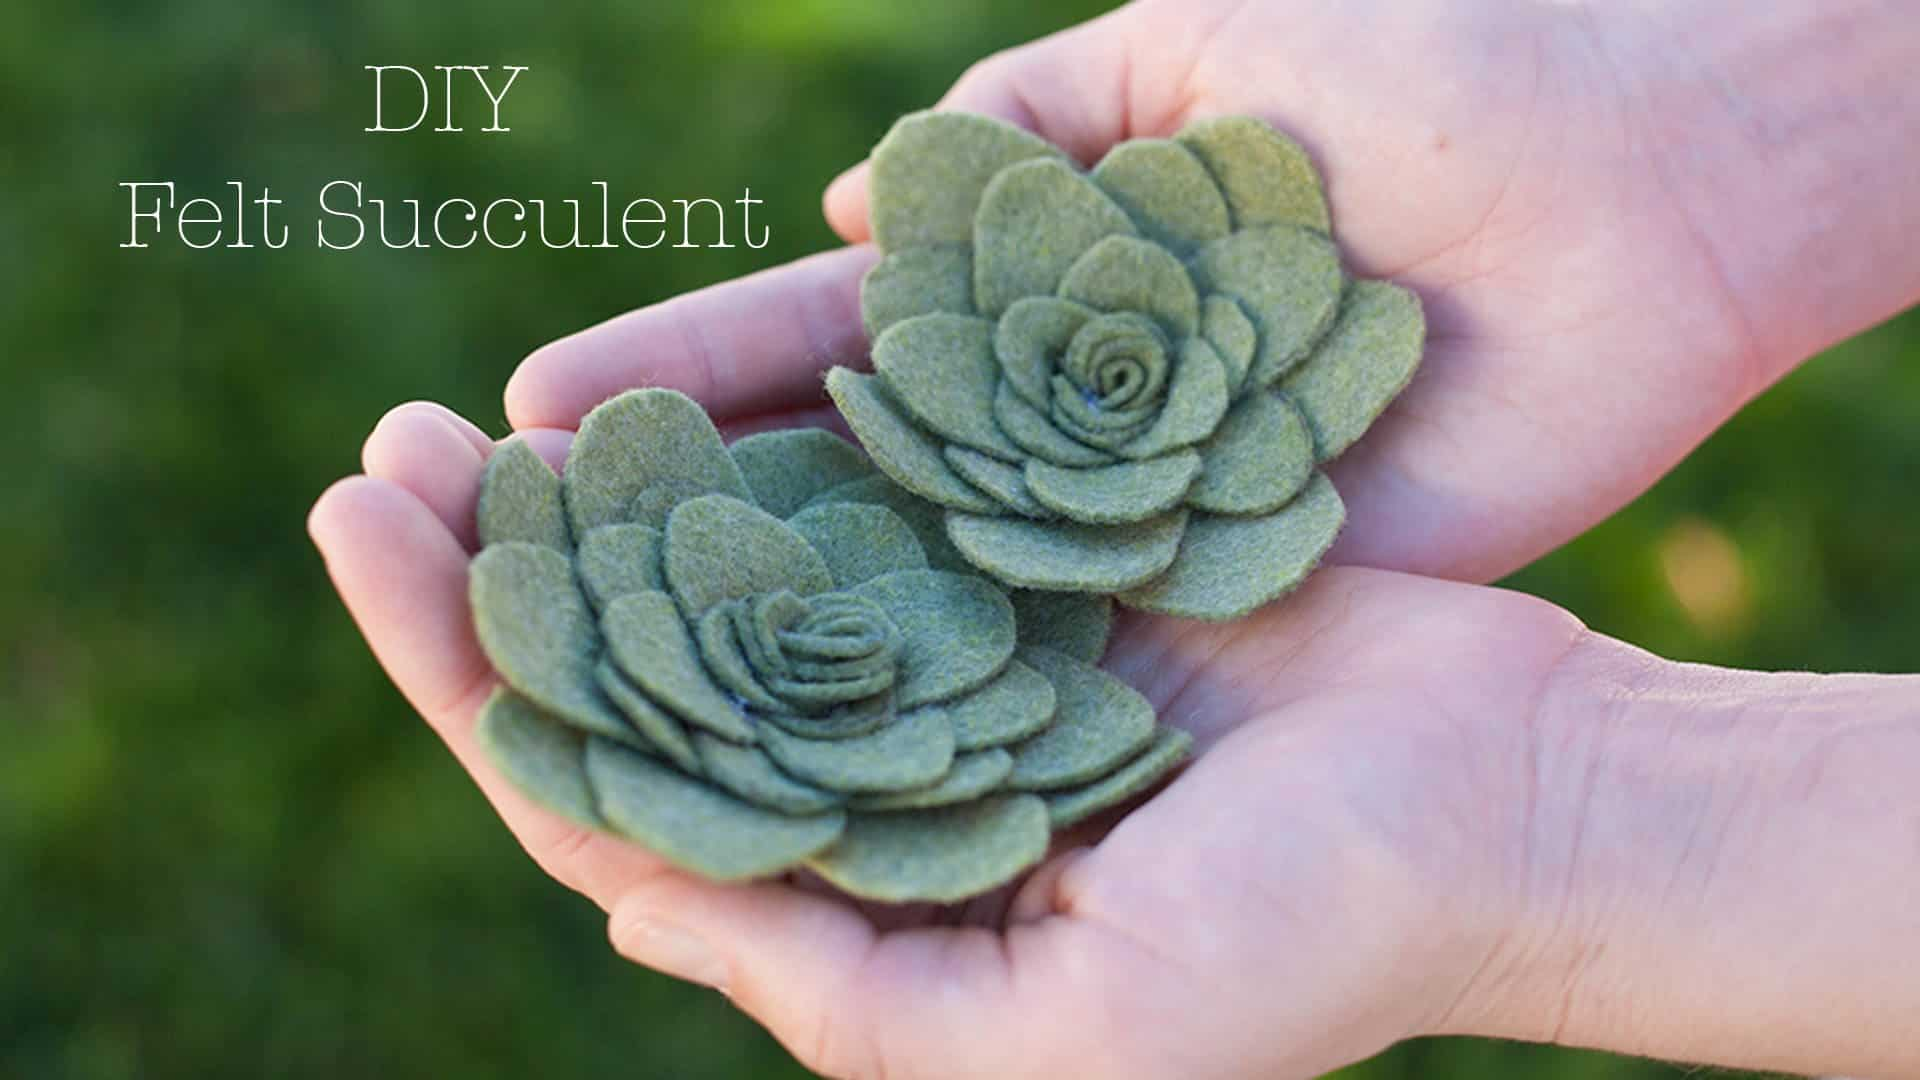 Succulents made with textured felt